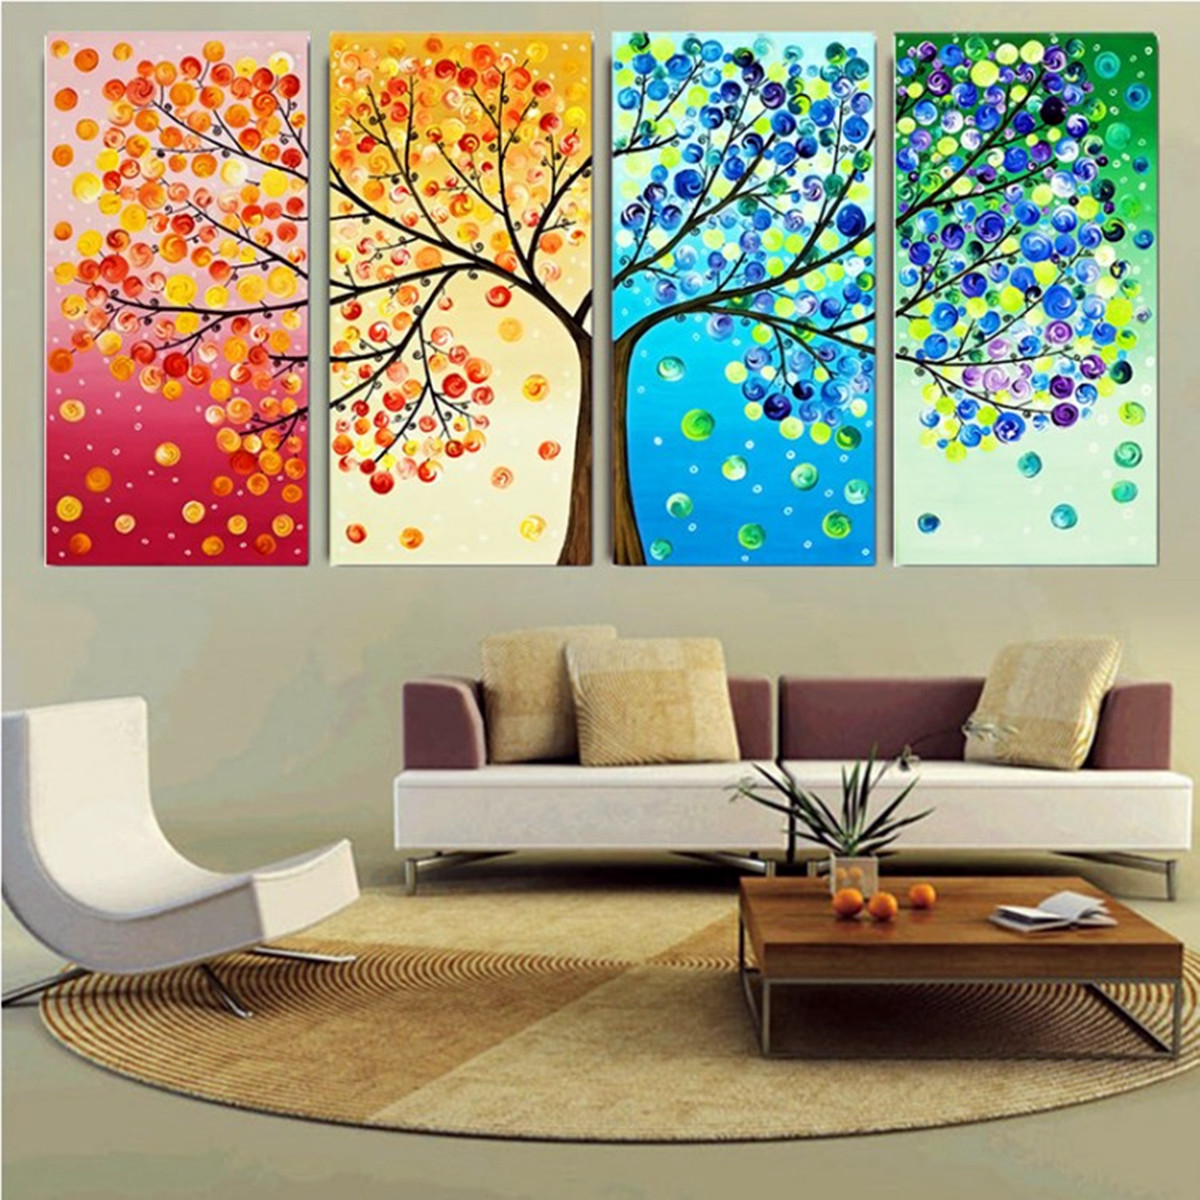 Diy handmade colorful season tree counted cross stitch for Home design ideas handmade